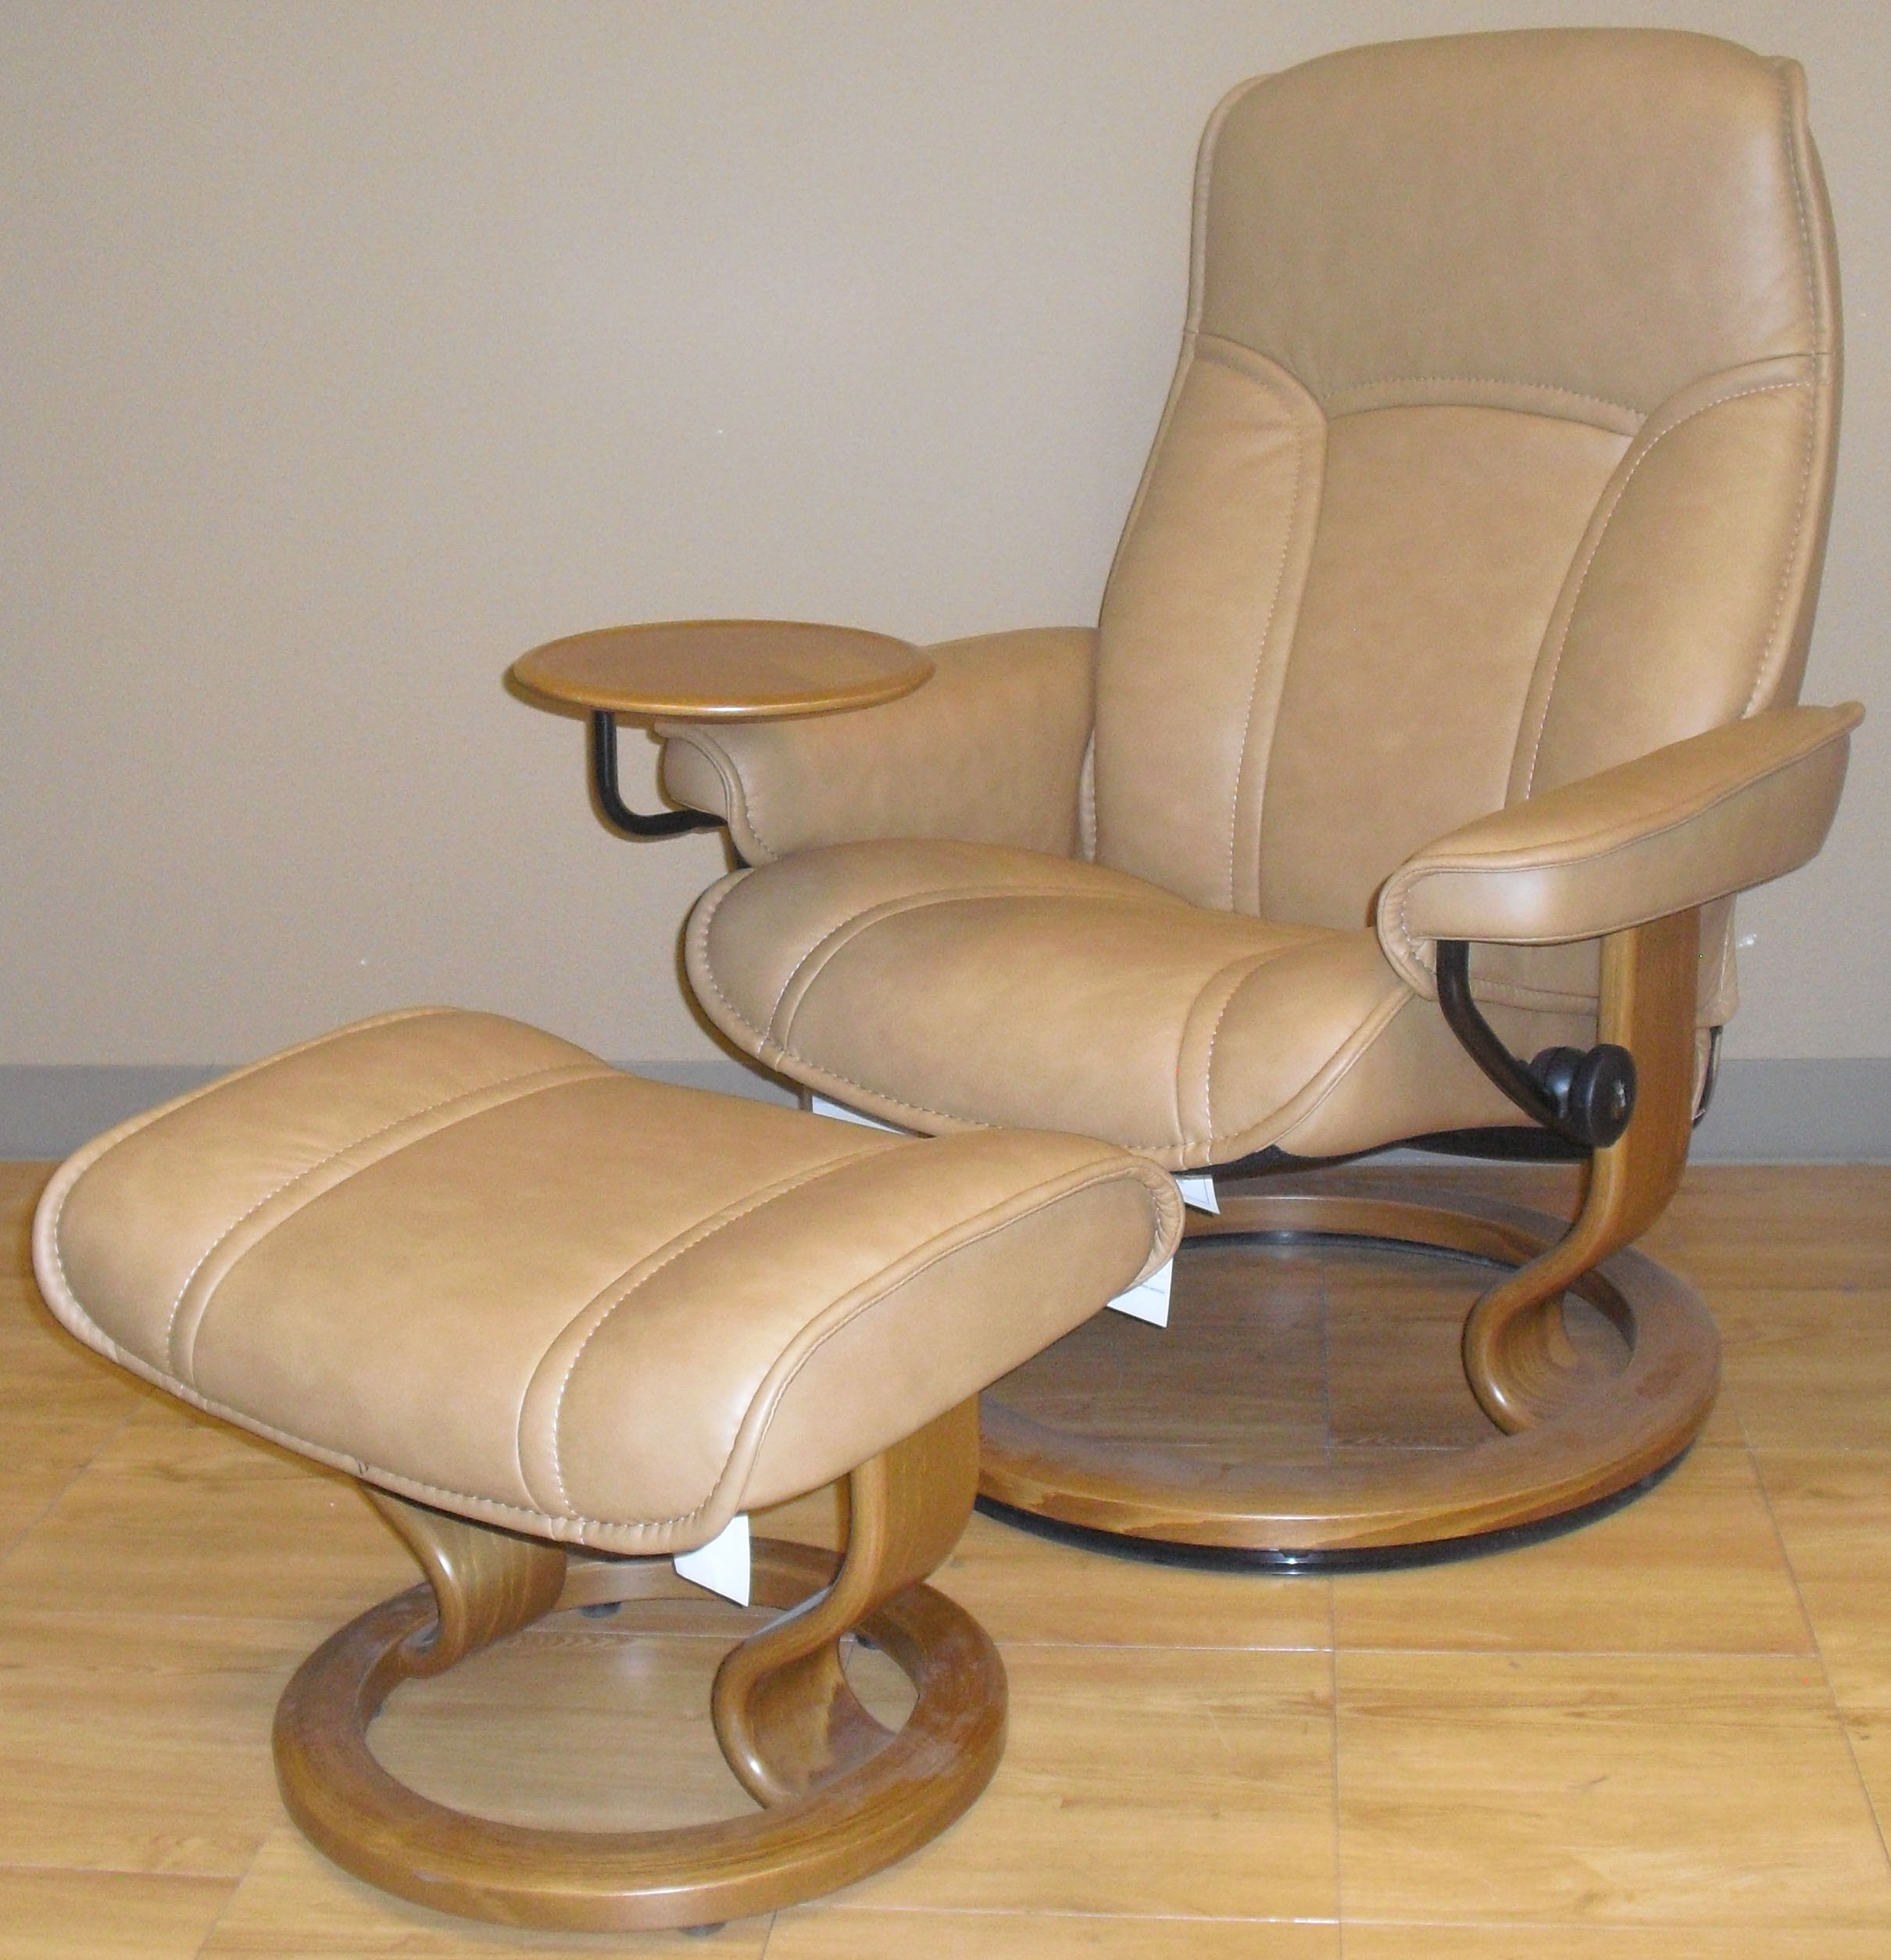 Ekornes Stressless Stressless Governor Large Leather Recliner Classic Wood Base Chair And Ottoman